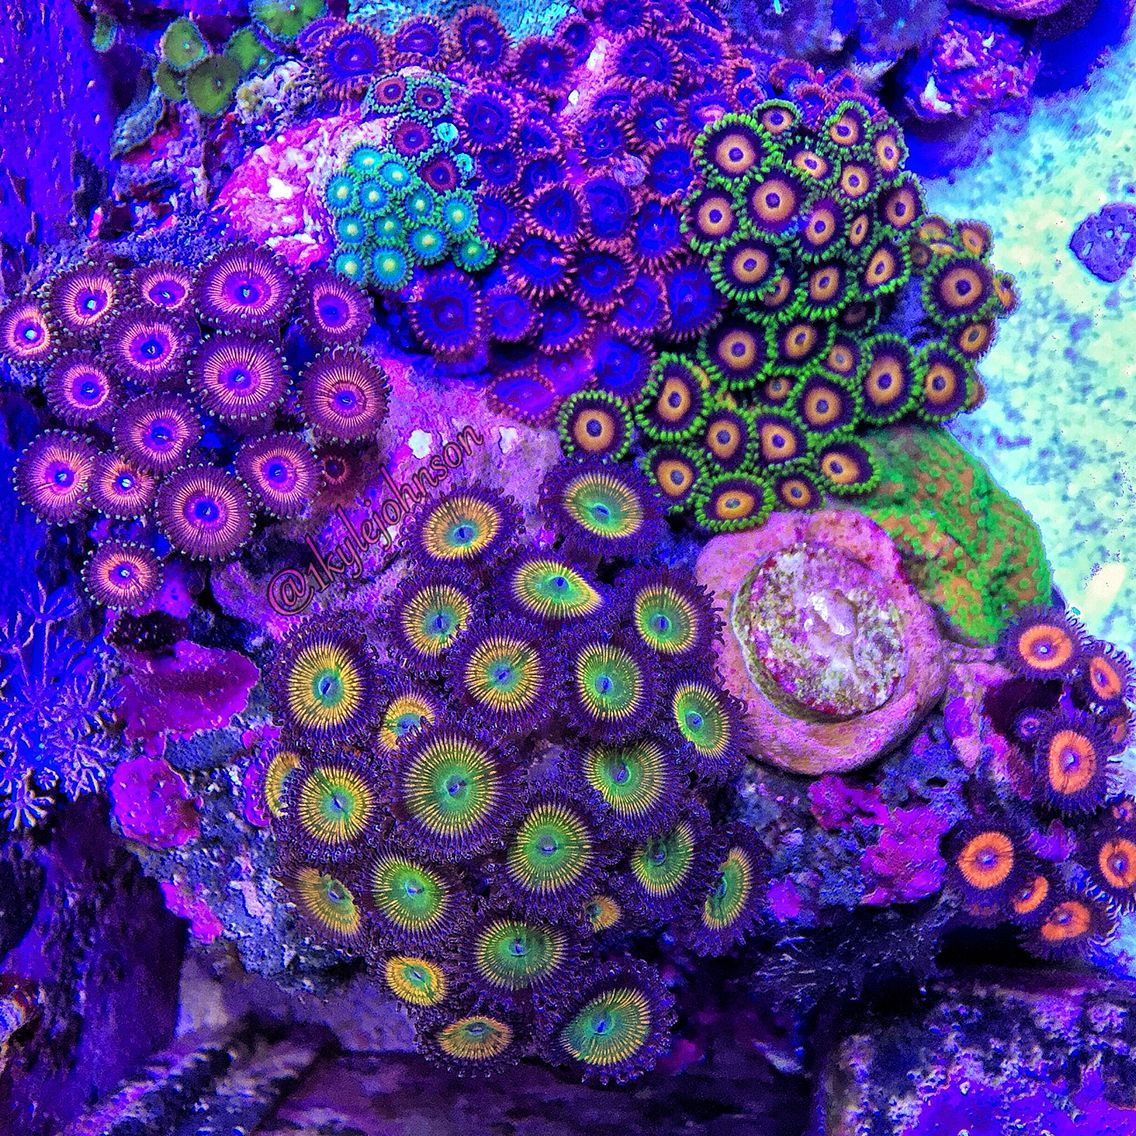 Top Down Shot Of My Zoa Garden Sunny D S Goochsters Sunflower Devils Armor Eagle Eyes Green Bay Packers And H Duncan Coral Saltwater Aquarium Clown Fish